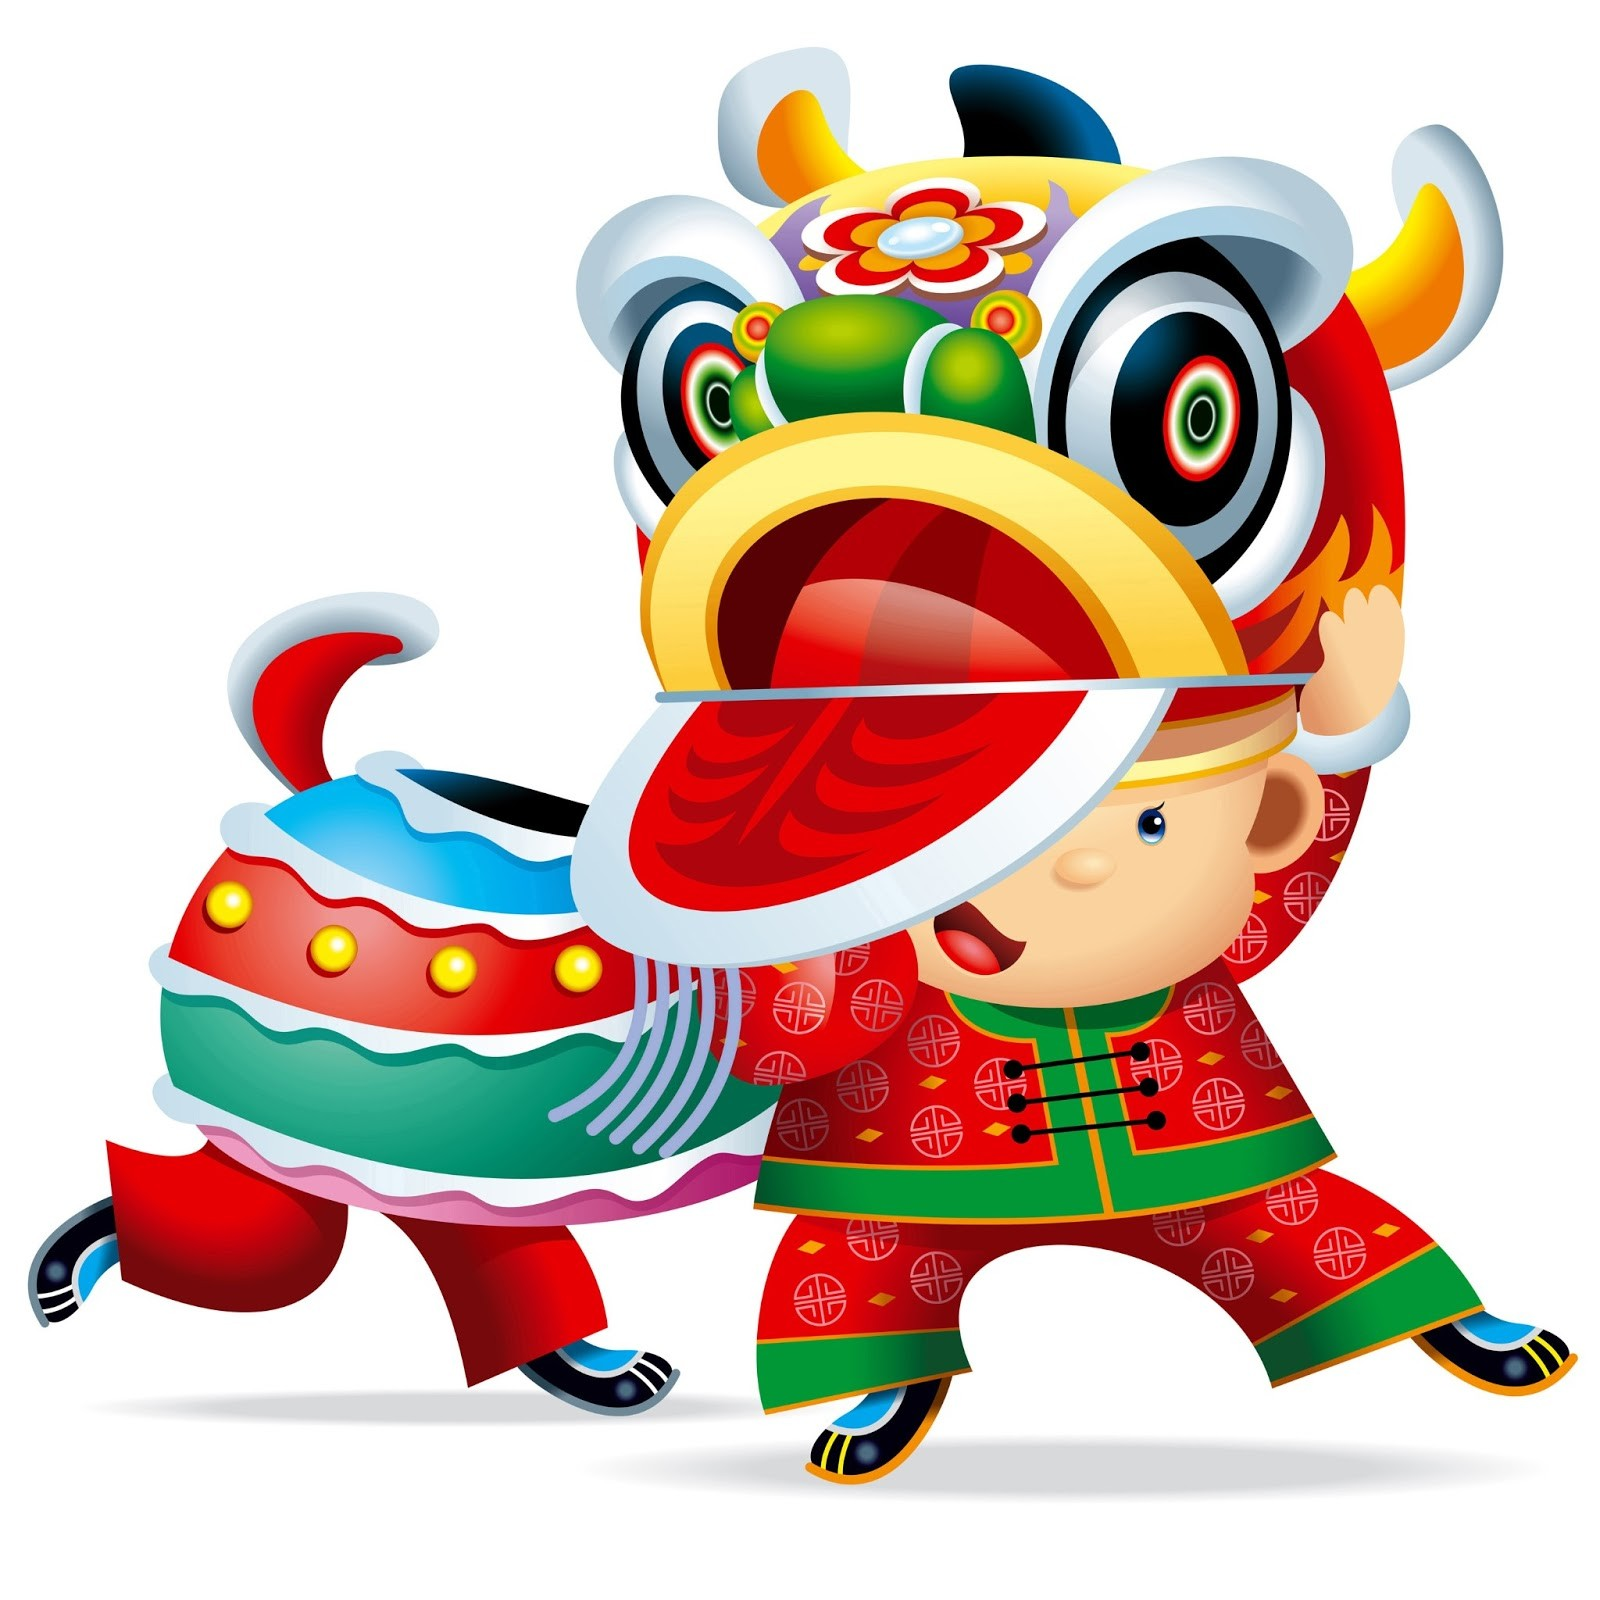 1600x1600 Asians Clipart Chinese Dragon Parade